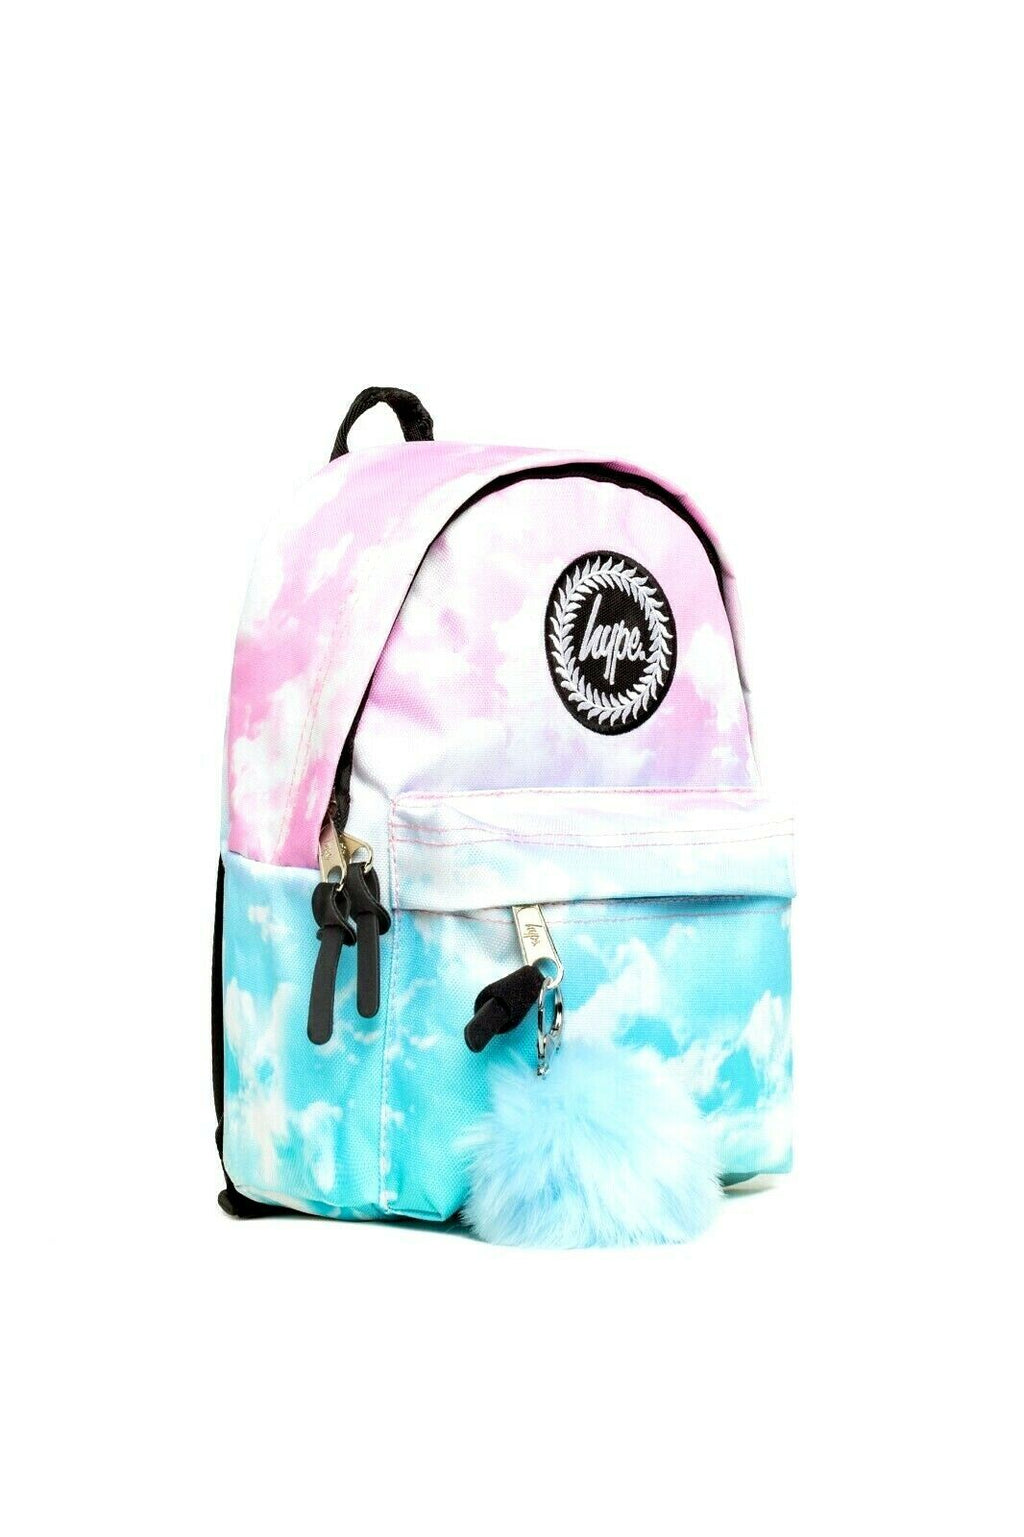 HYPE CLOUD FADE MINI BACKPACK RUCKSACK BAG - MULTI